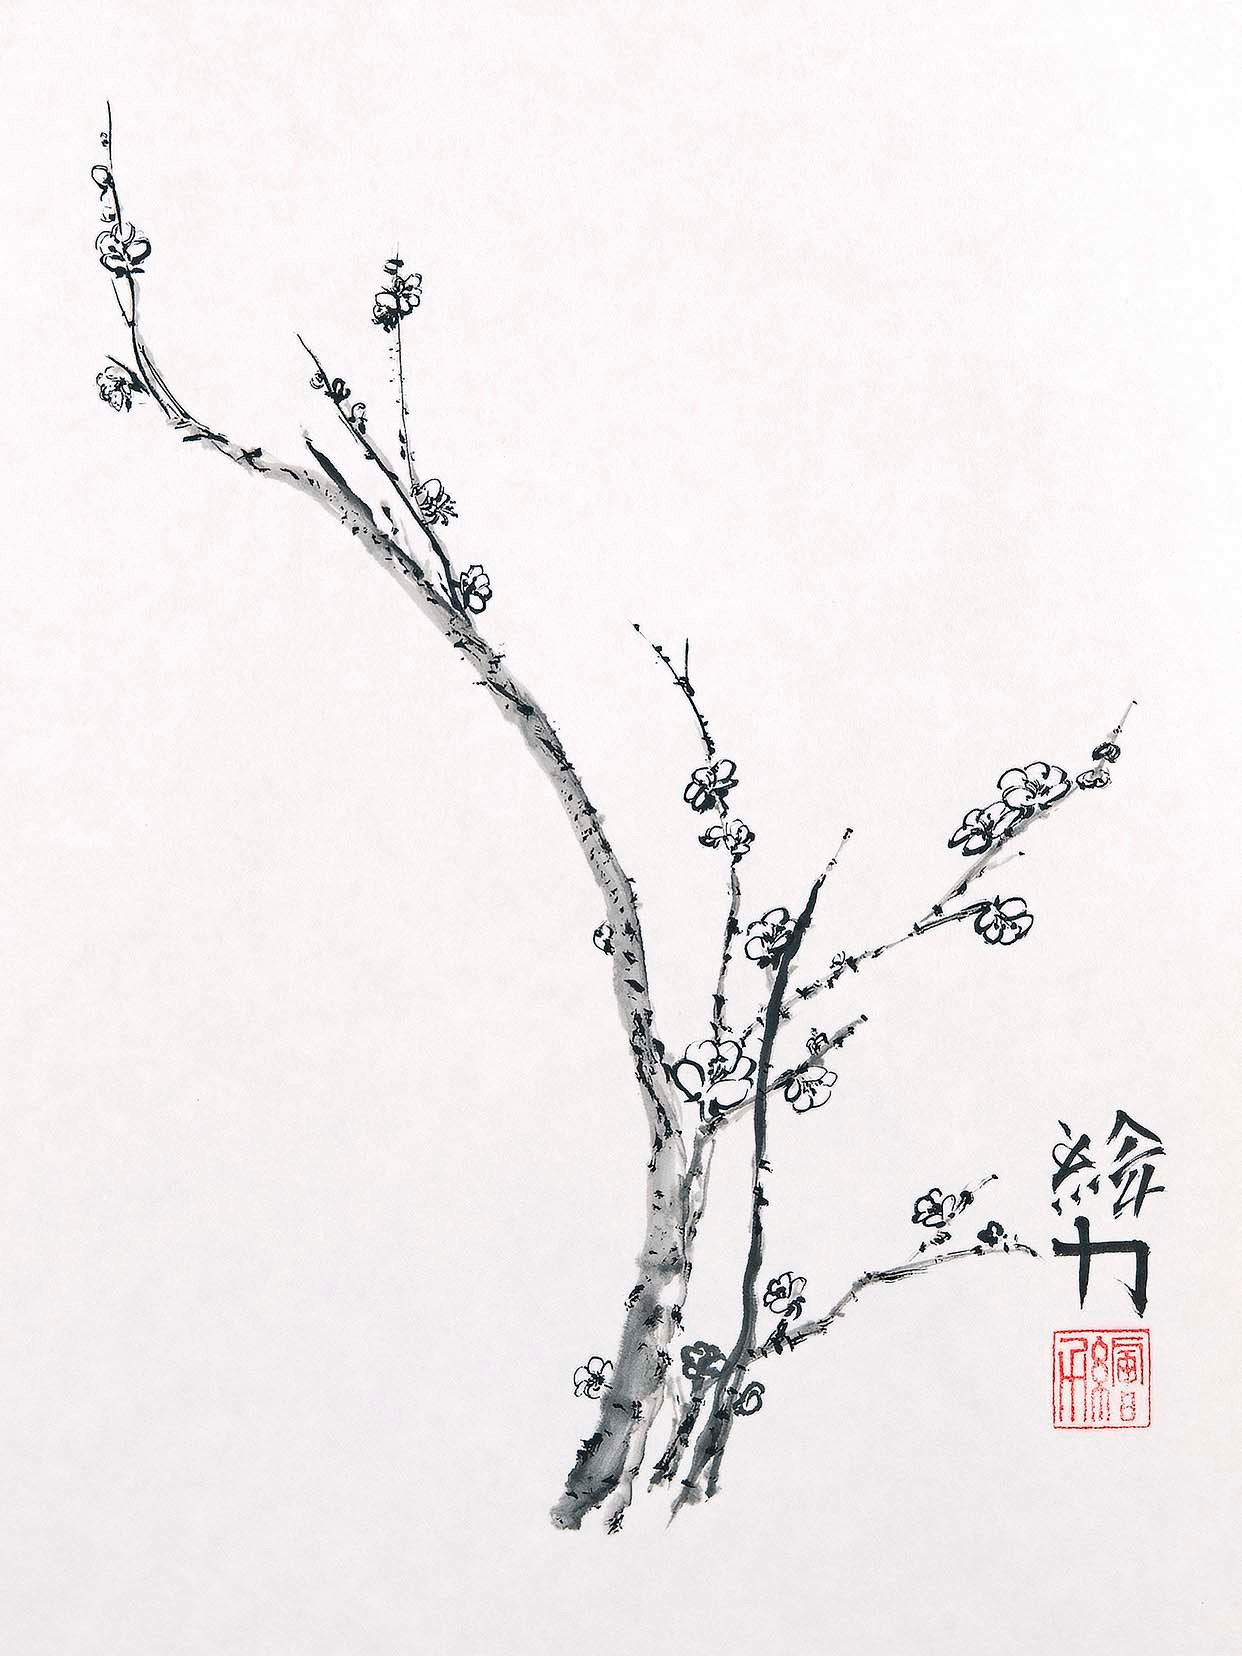 Hombretheartist sumie plumblossom 4 forwebsite lrl5cz